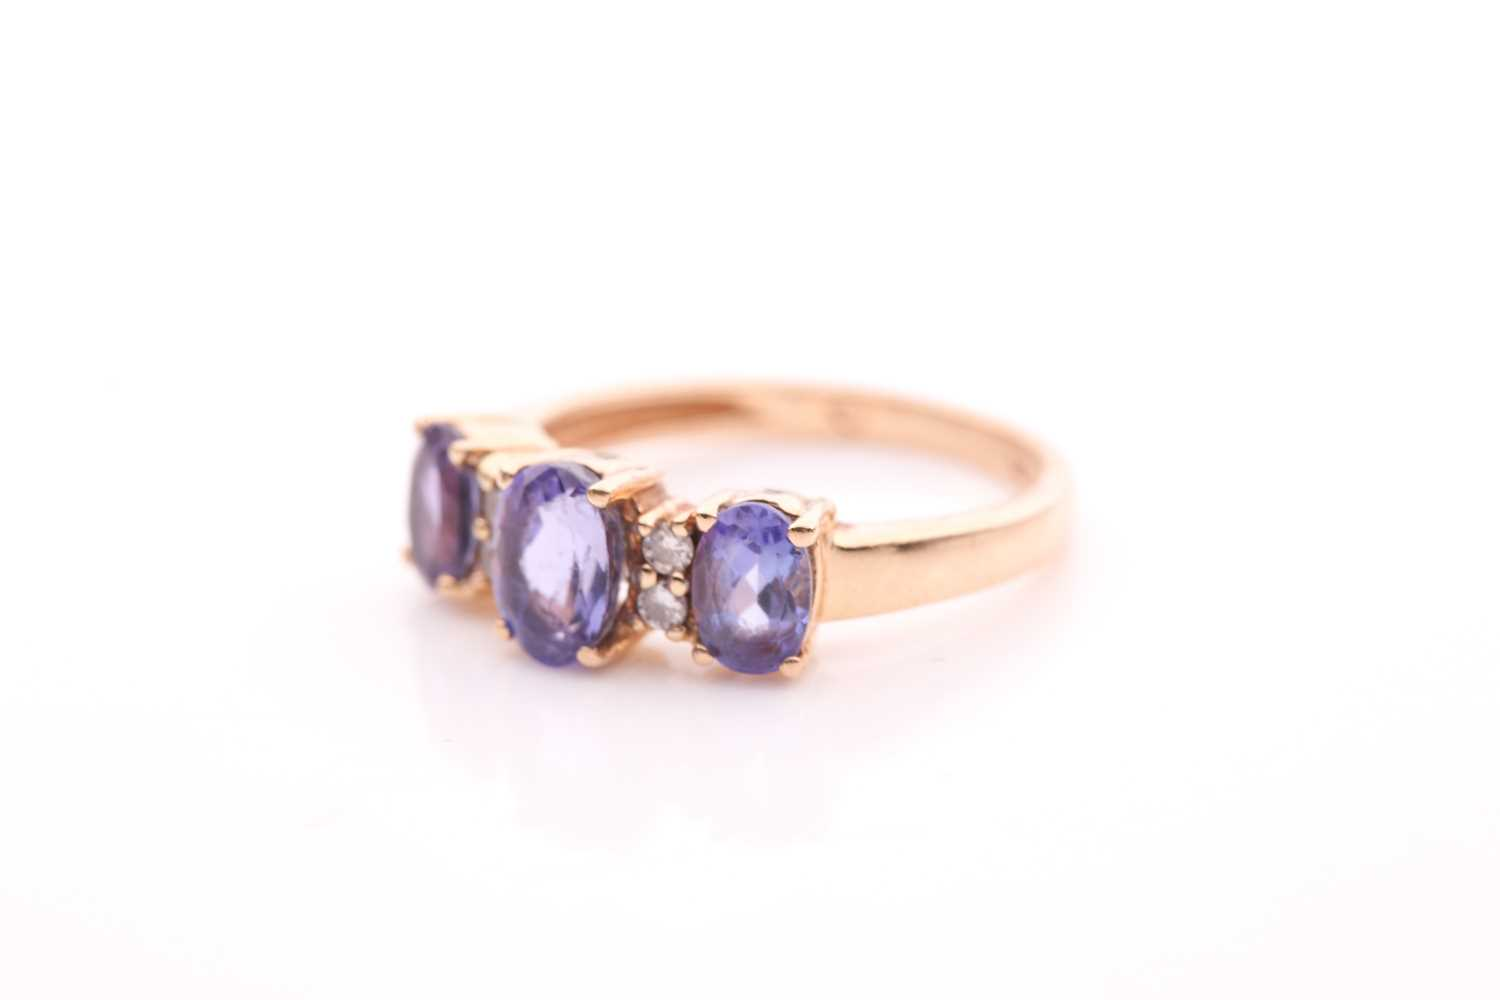 A yellow metal and tanzanite ring, set with three mixed oval-cut tanzanites, interspersed with - Image 4 of 5